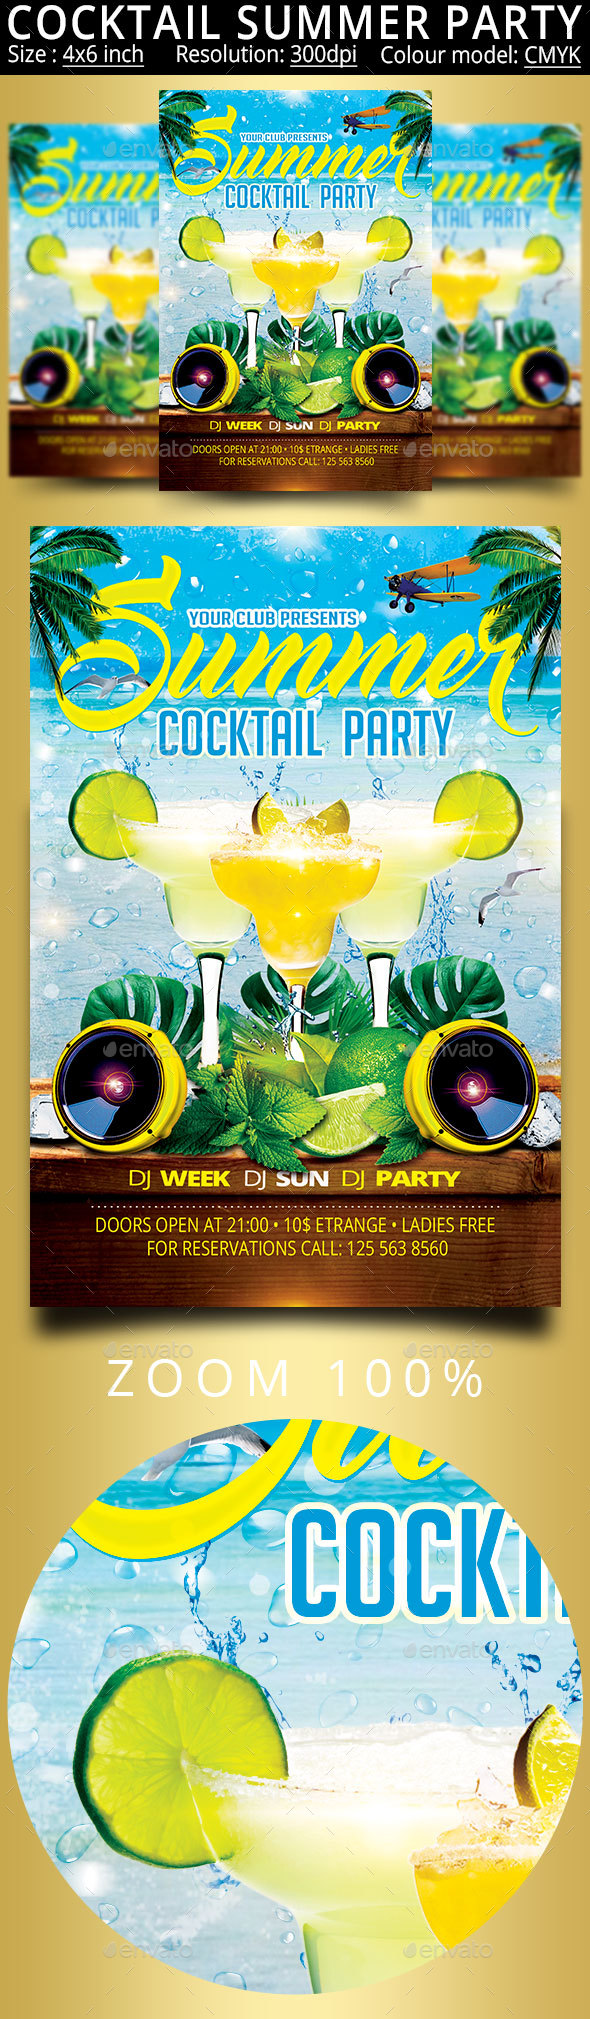 Cocktail Summer Party Flyer - Clubs & Parties Events